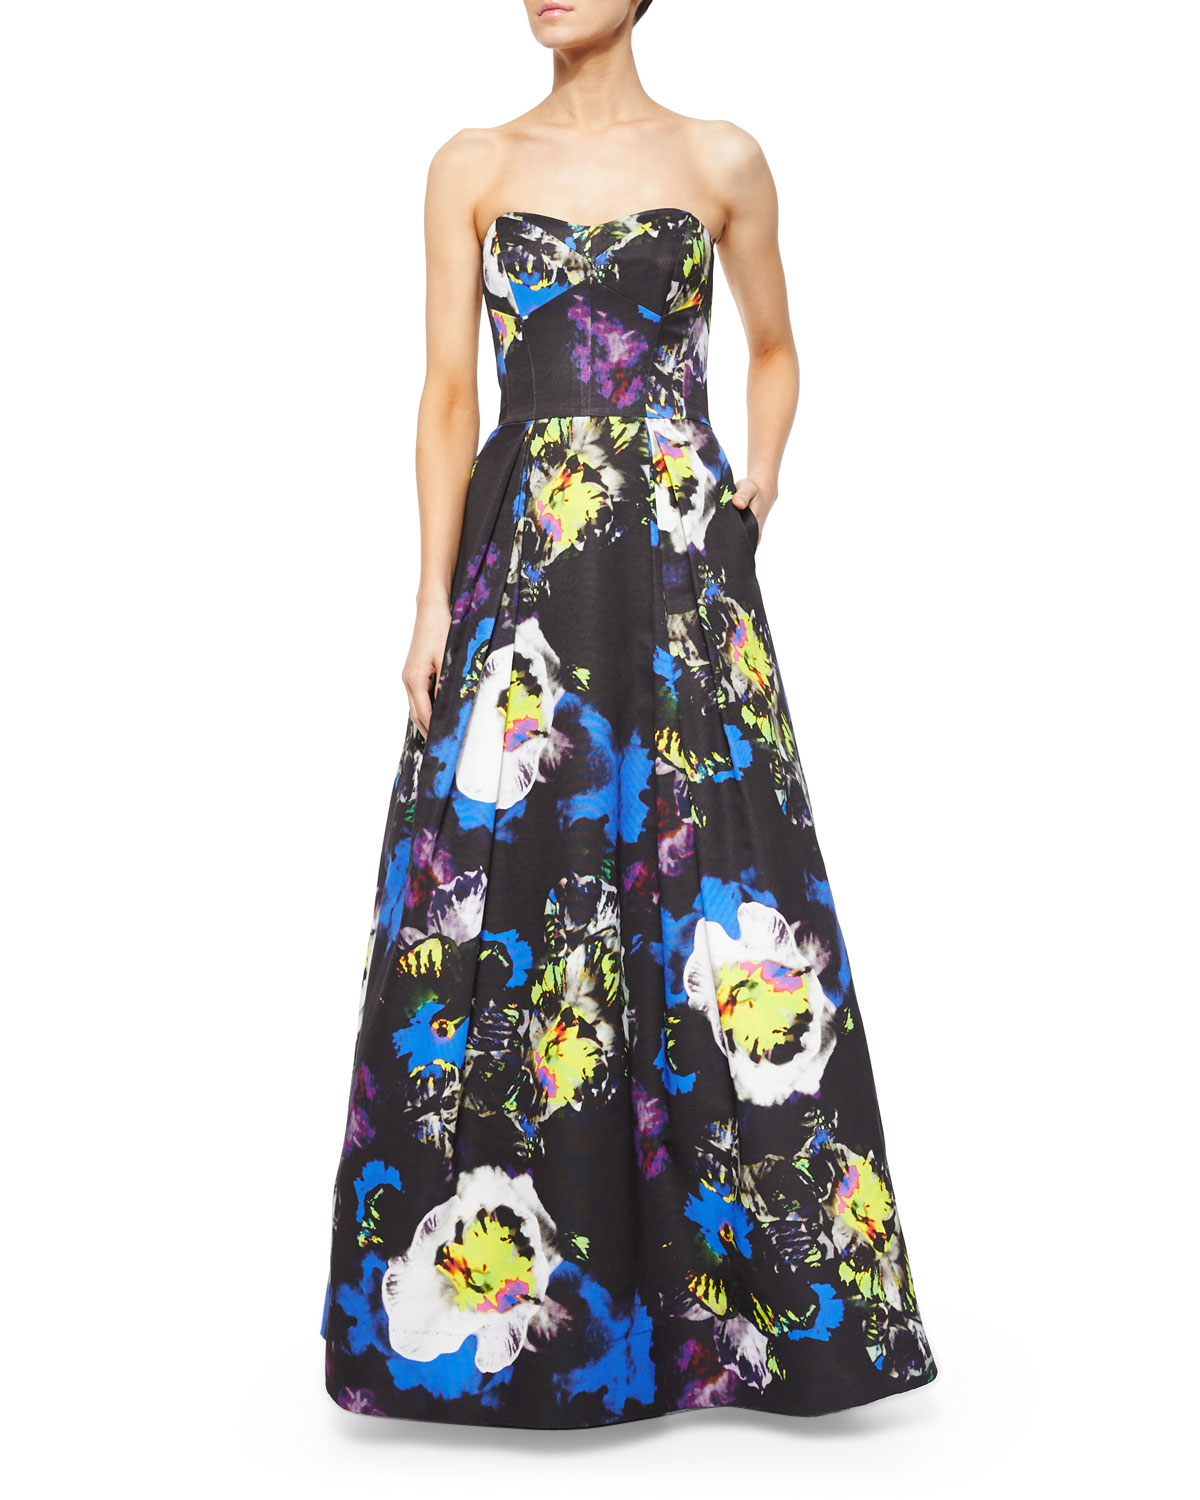 Lyst - Milly Strapless Floral-Print Gown